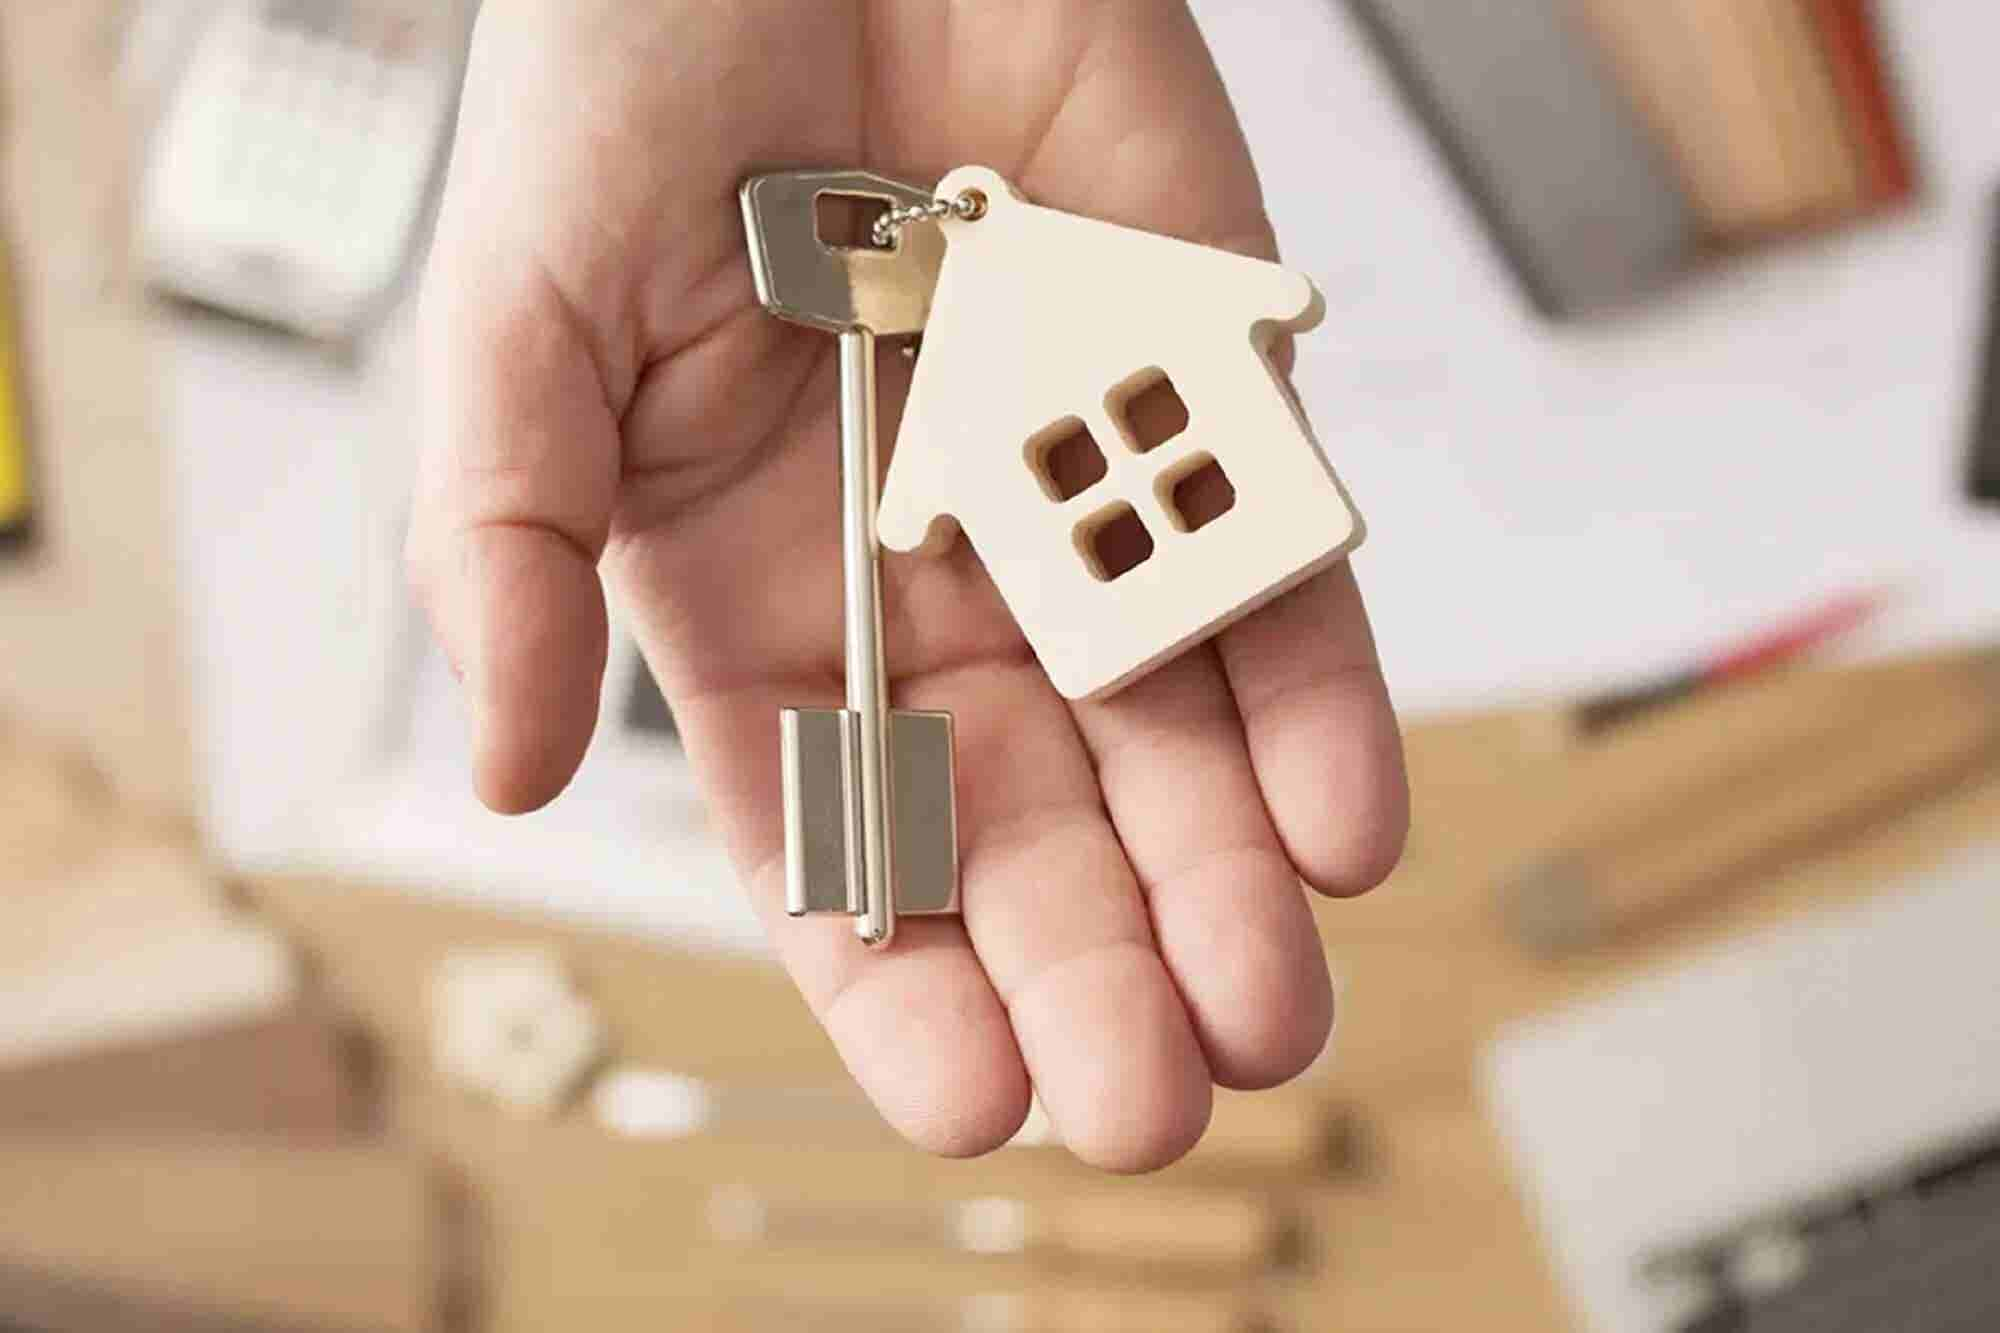 #InvestmentSpecial: Real Estate Can be Risky. Here's How You Can Invest in it